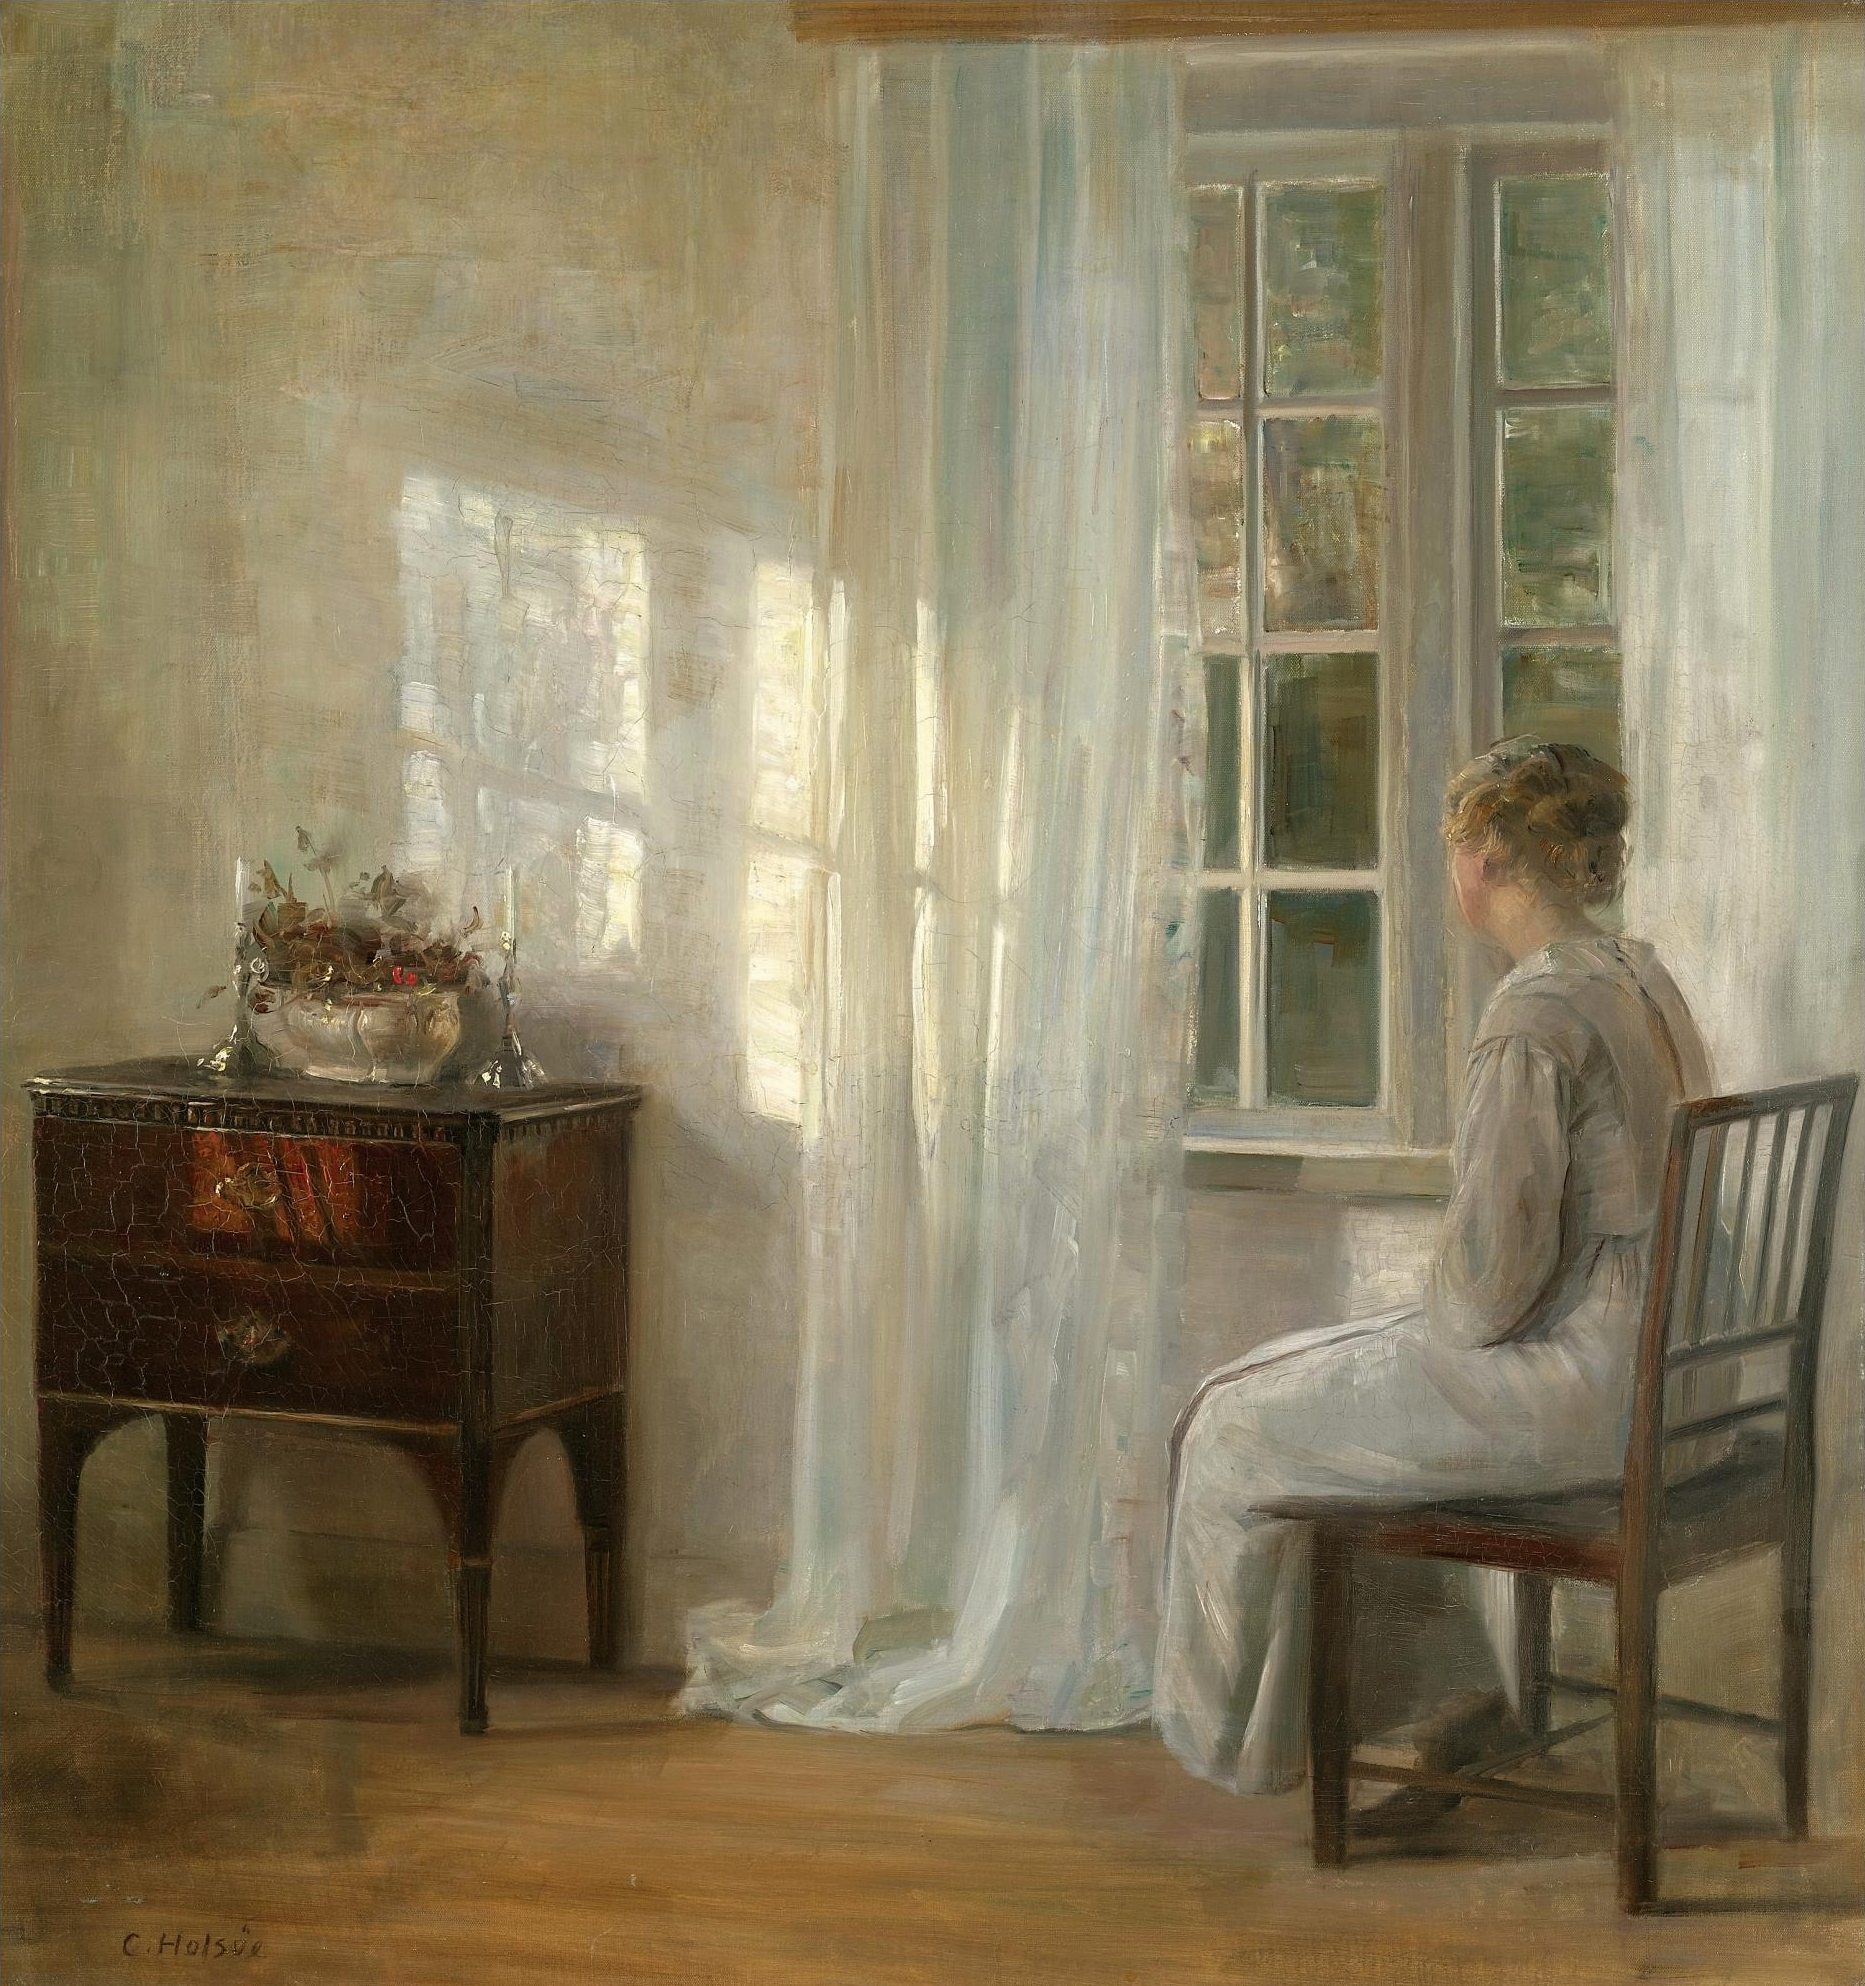 https://upload.wikimedia.org/wikipedia/commons/5/58/Waiting_By_The_Window.jpg